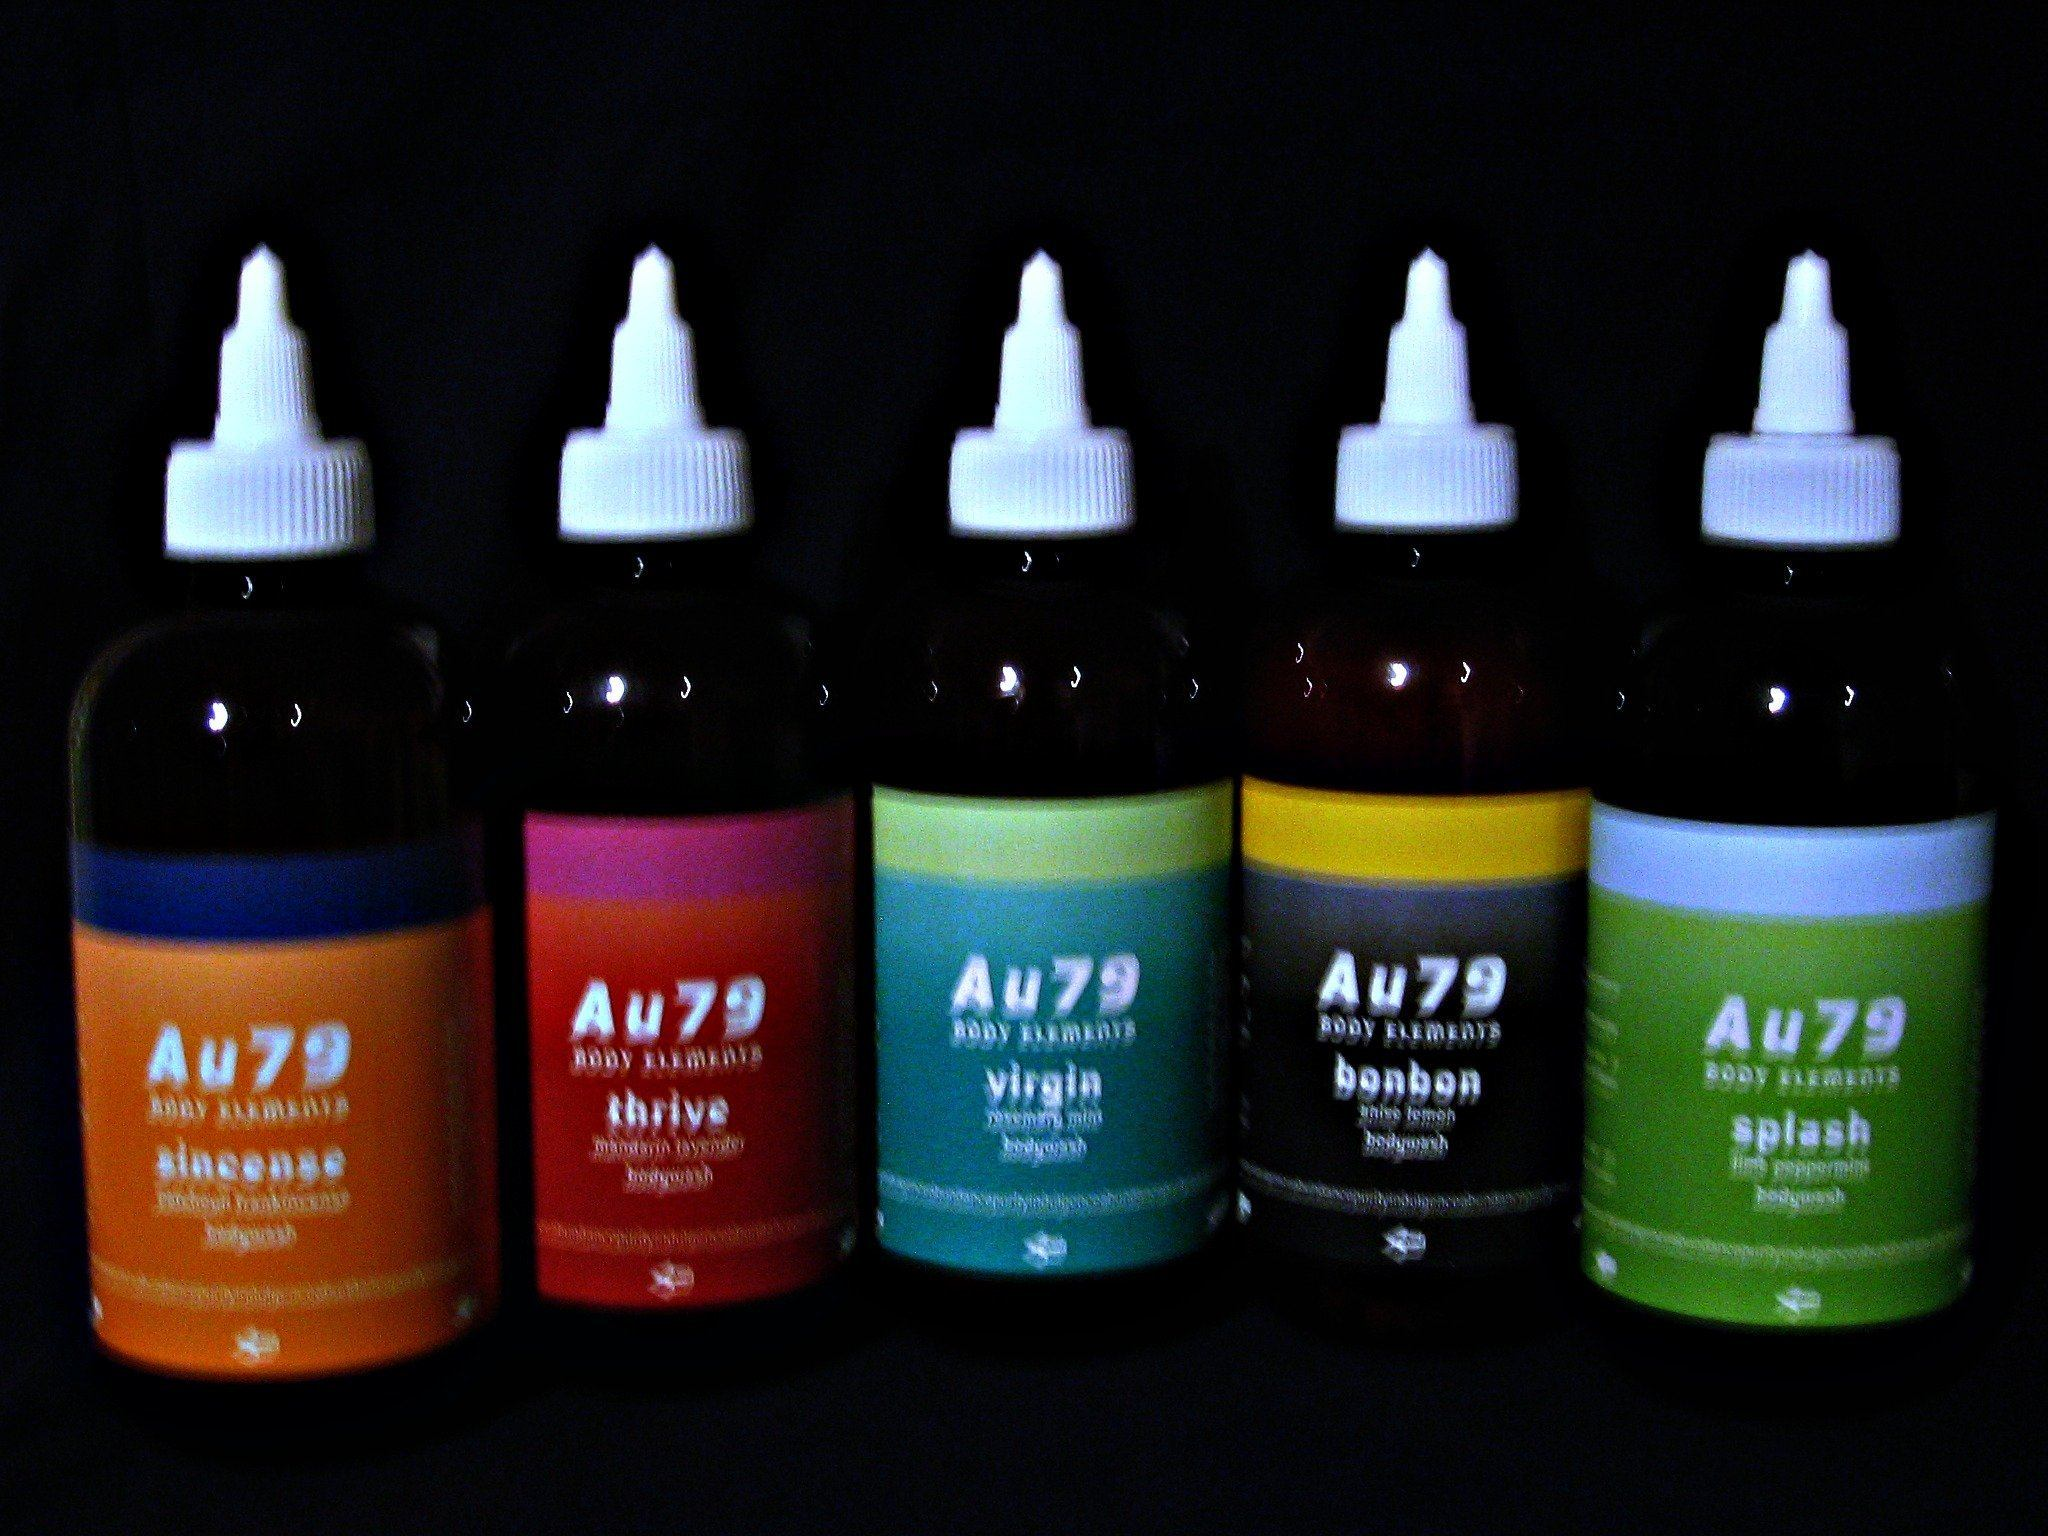 au79 body elements skin hair and body care